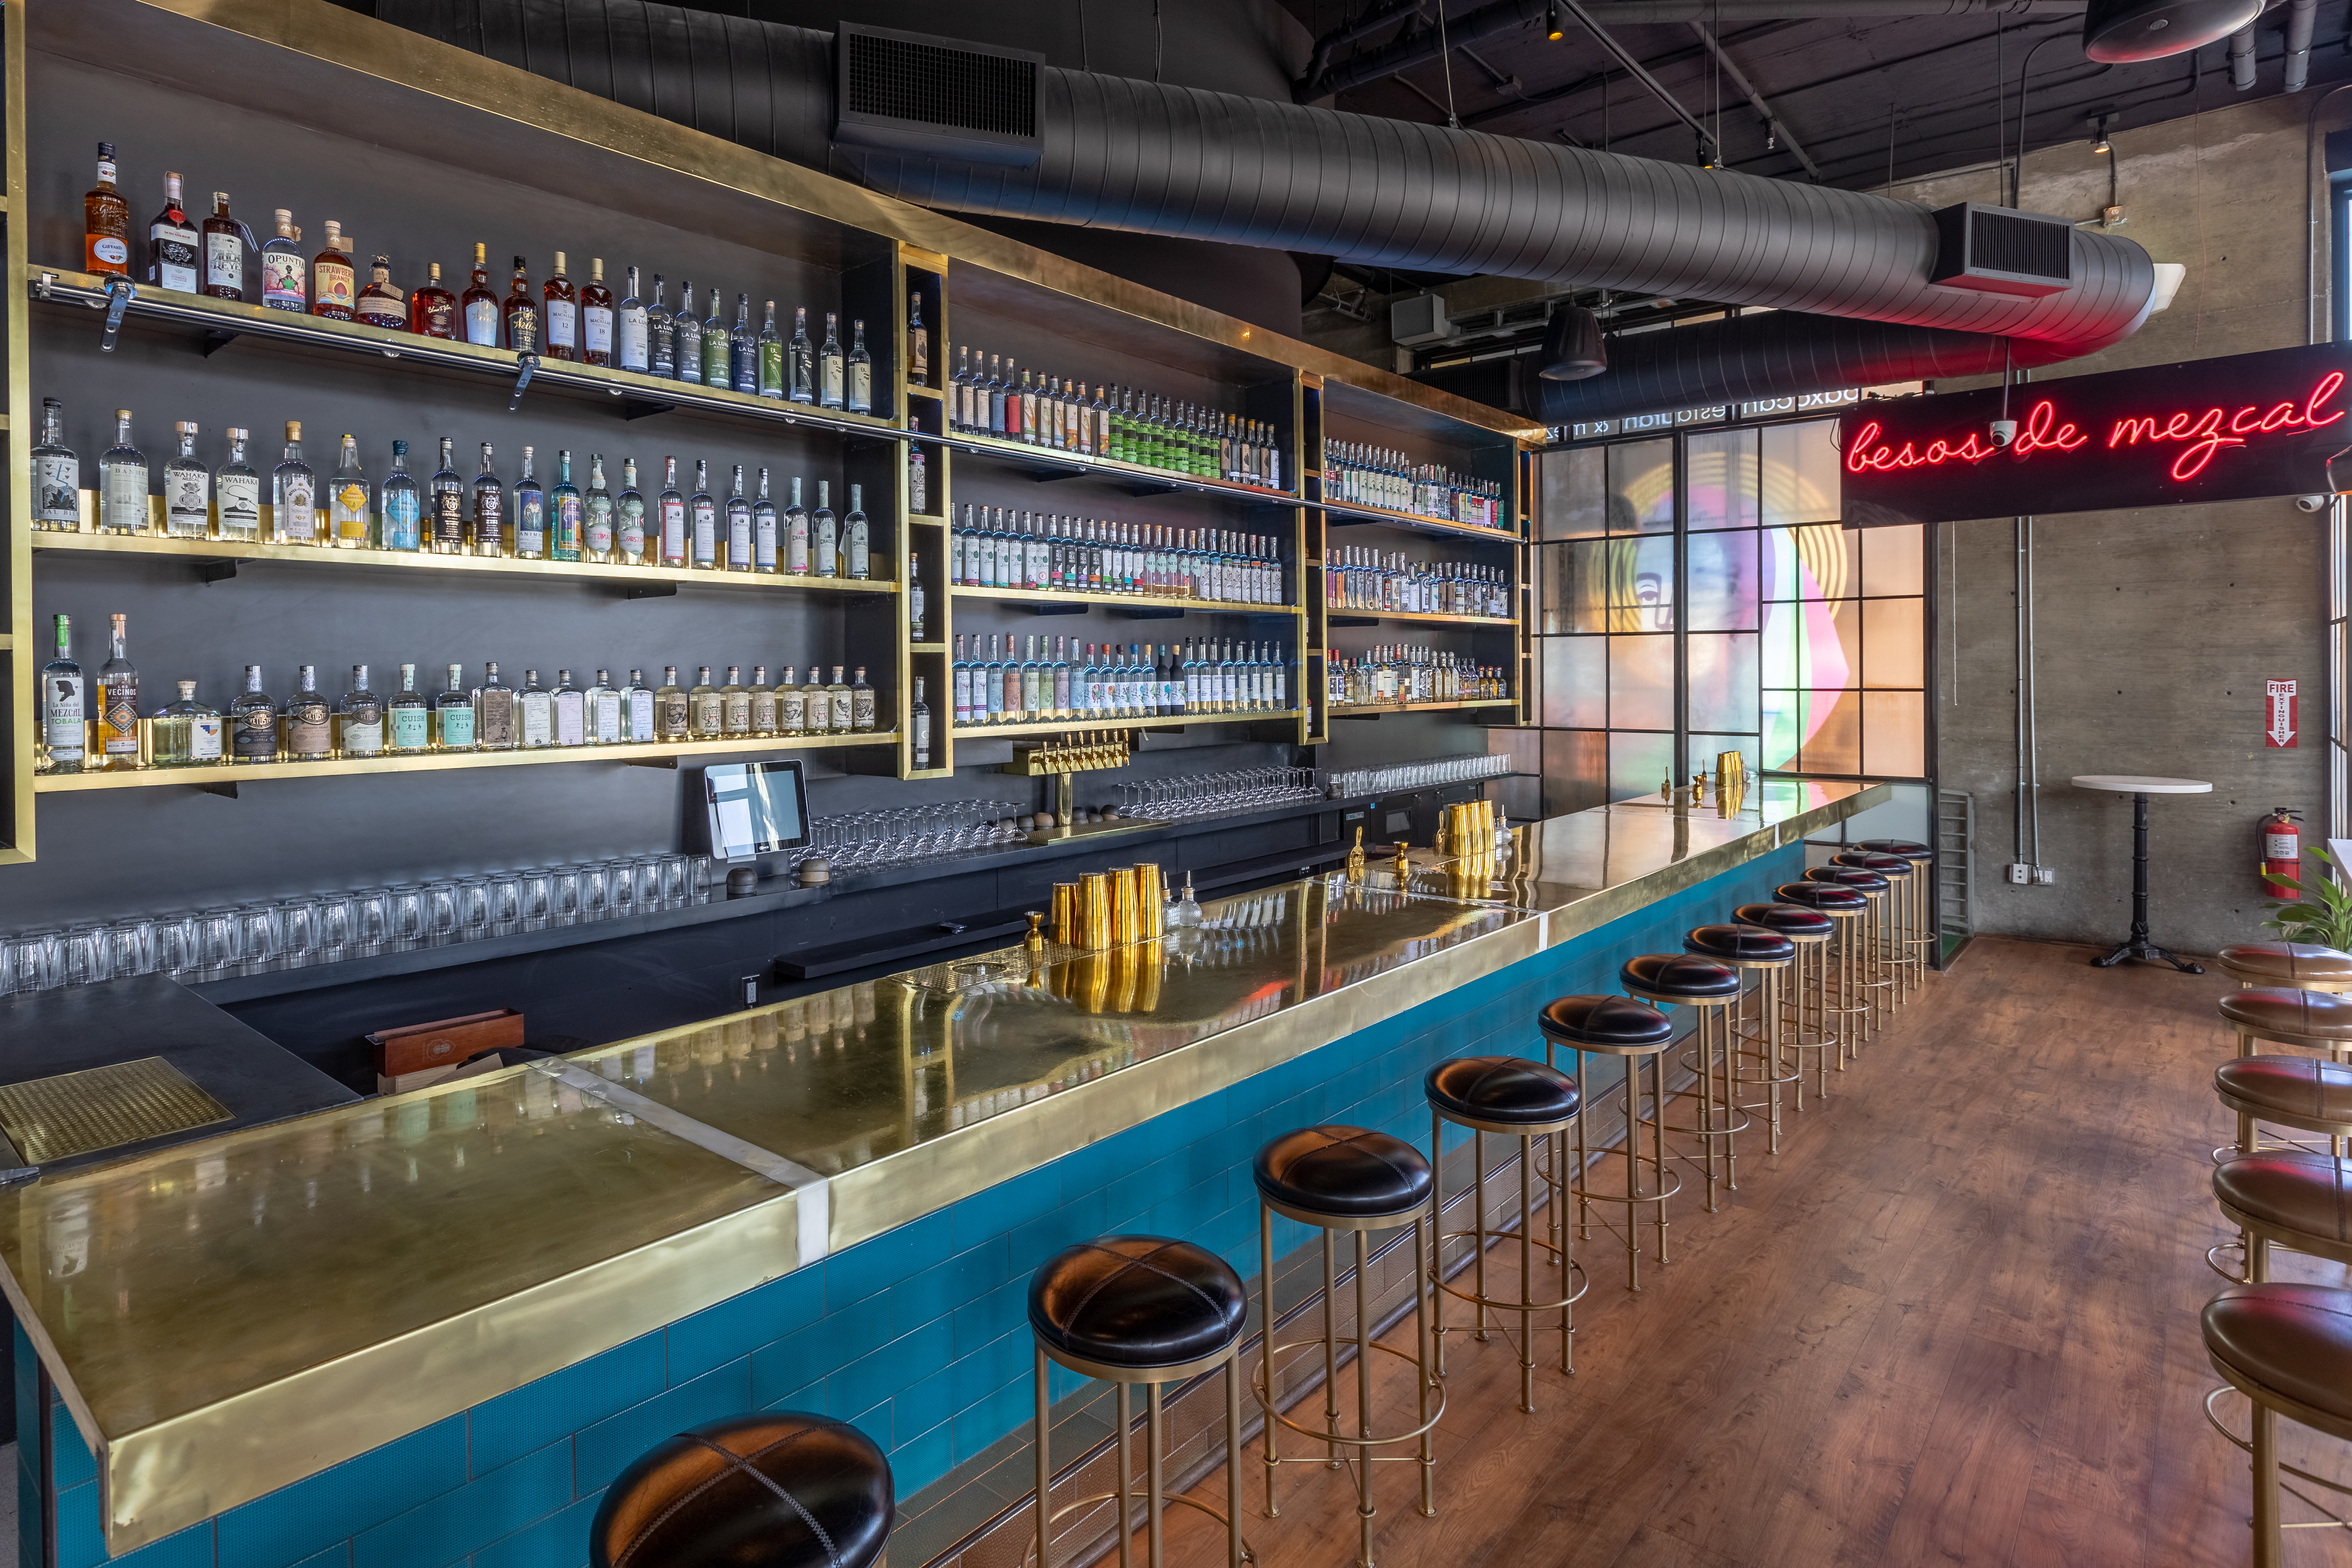 """The bar and counter at Madre West Hollywood with bottles and neon sign reading """"besos de mezcal""""."""